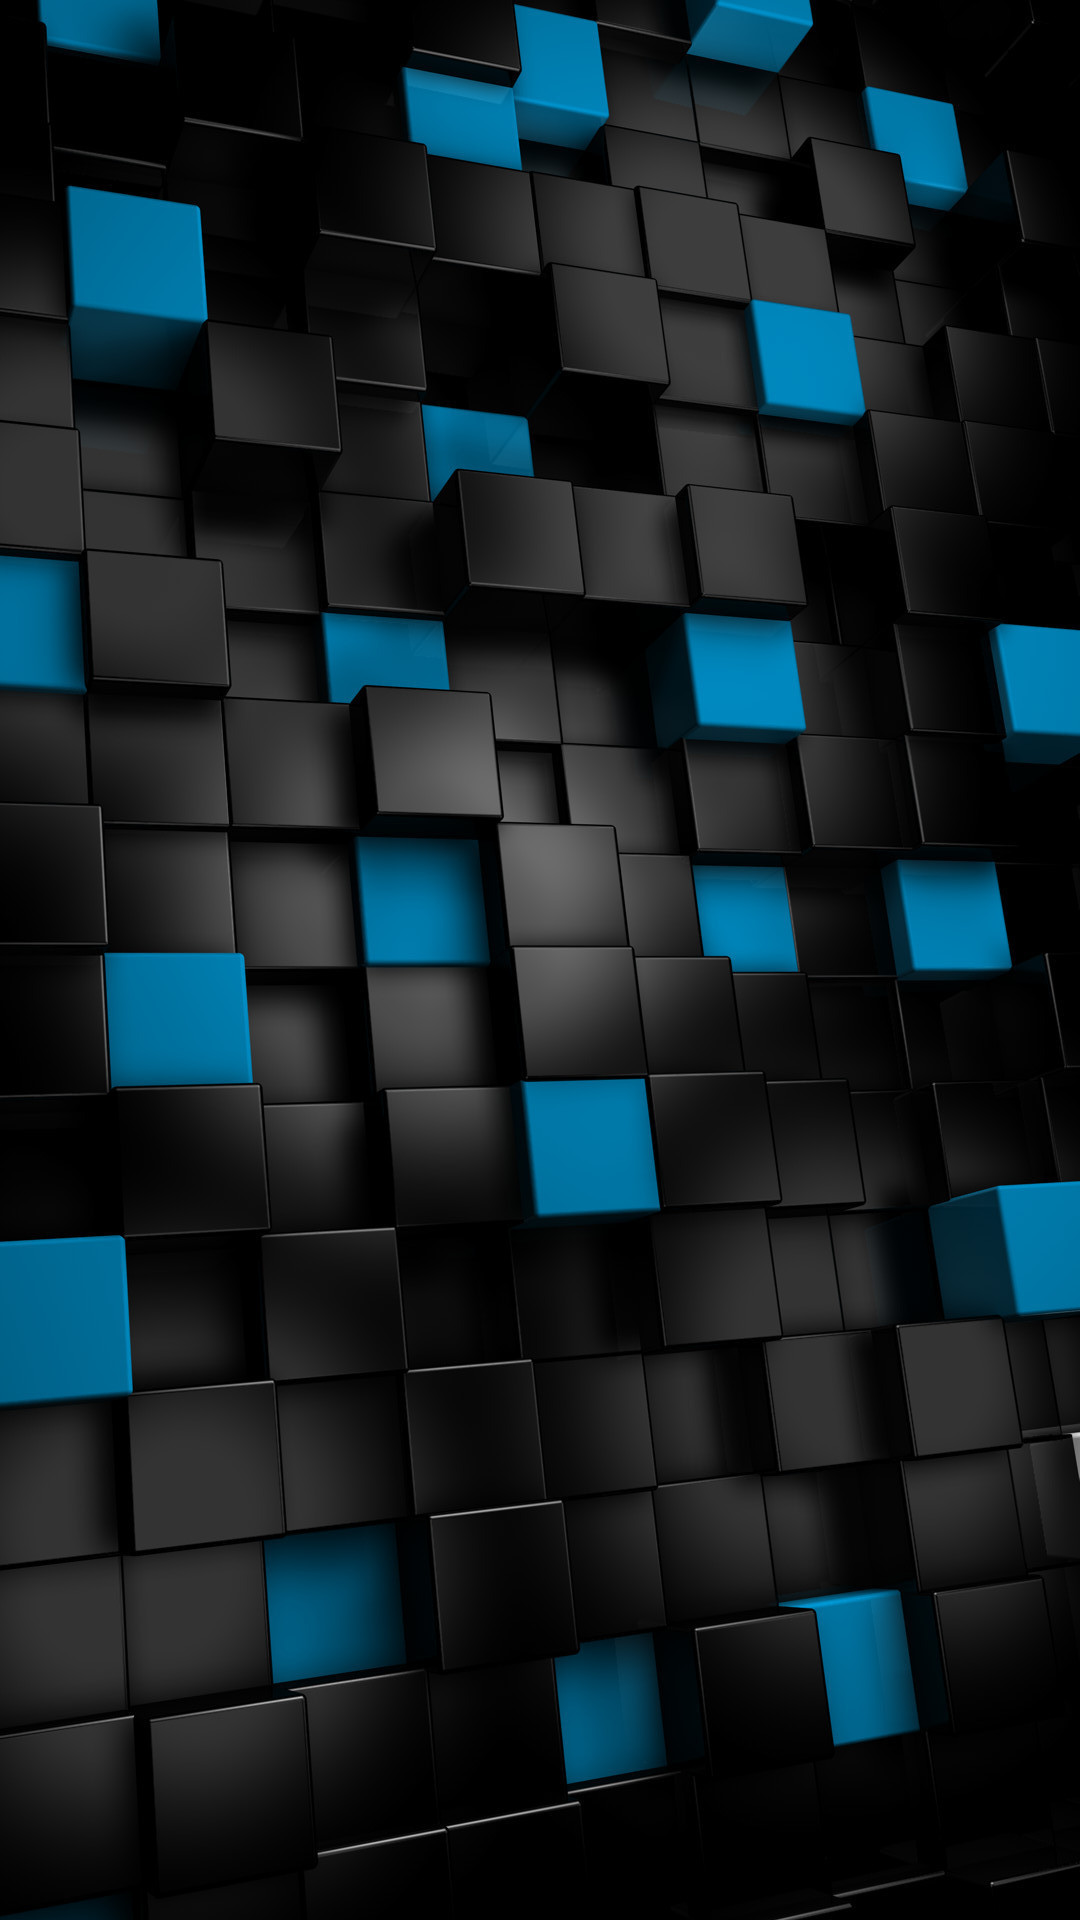 Black And Blue Hd Wallpaper 67 Images